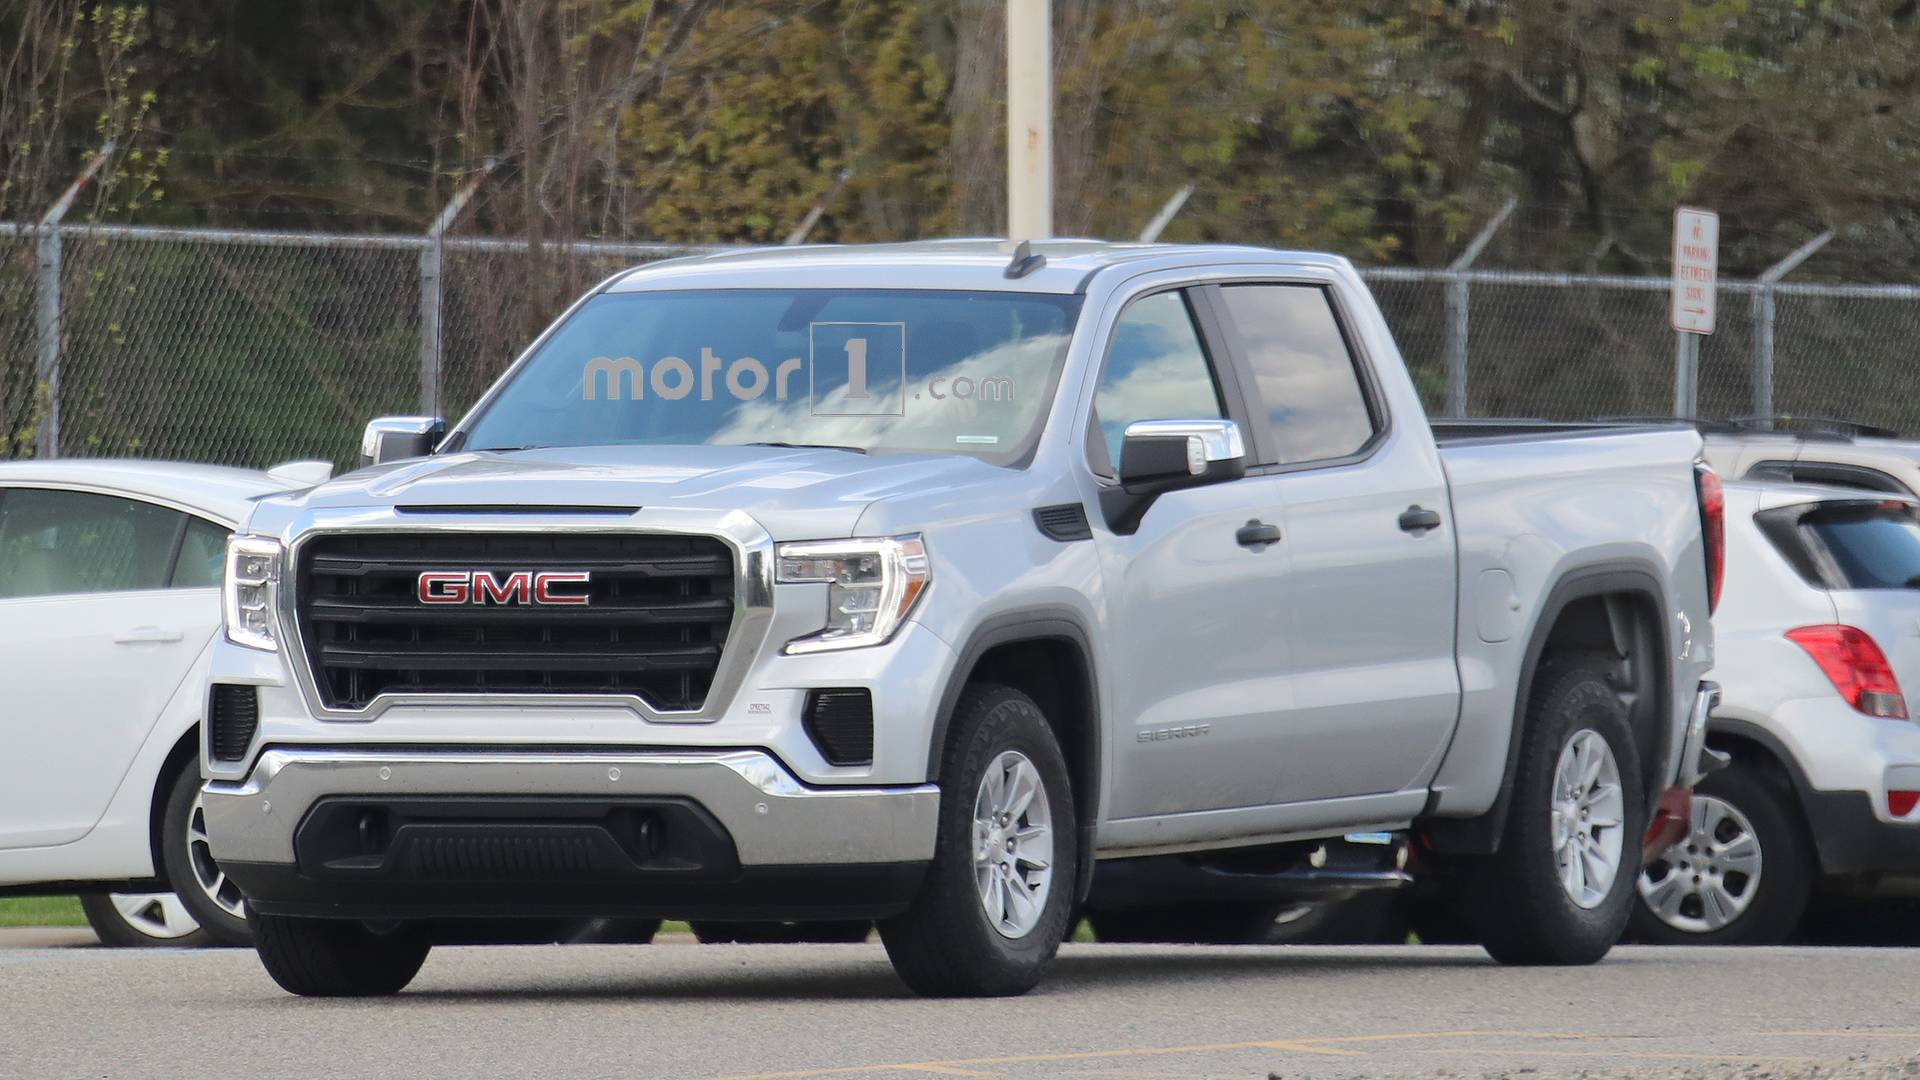 Entry-Level 2019 GMC Sierra 1500 Spied Looking Quite